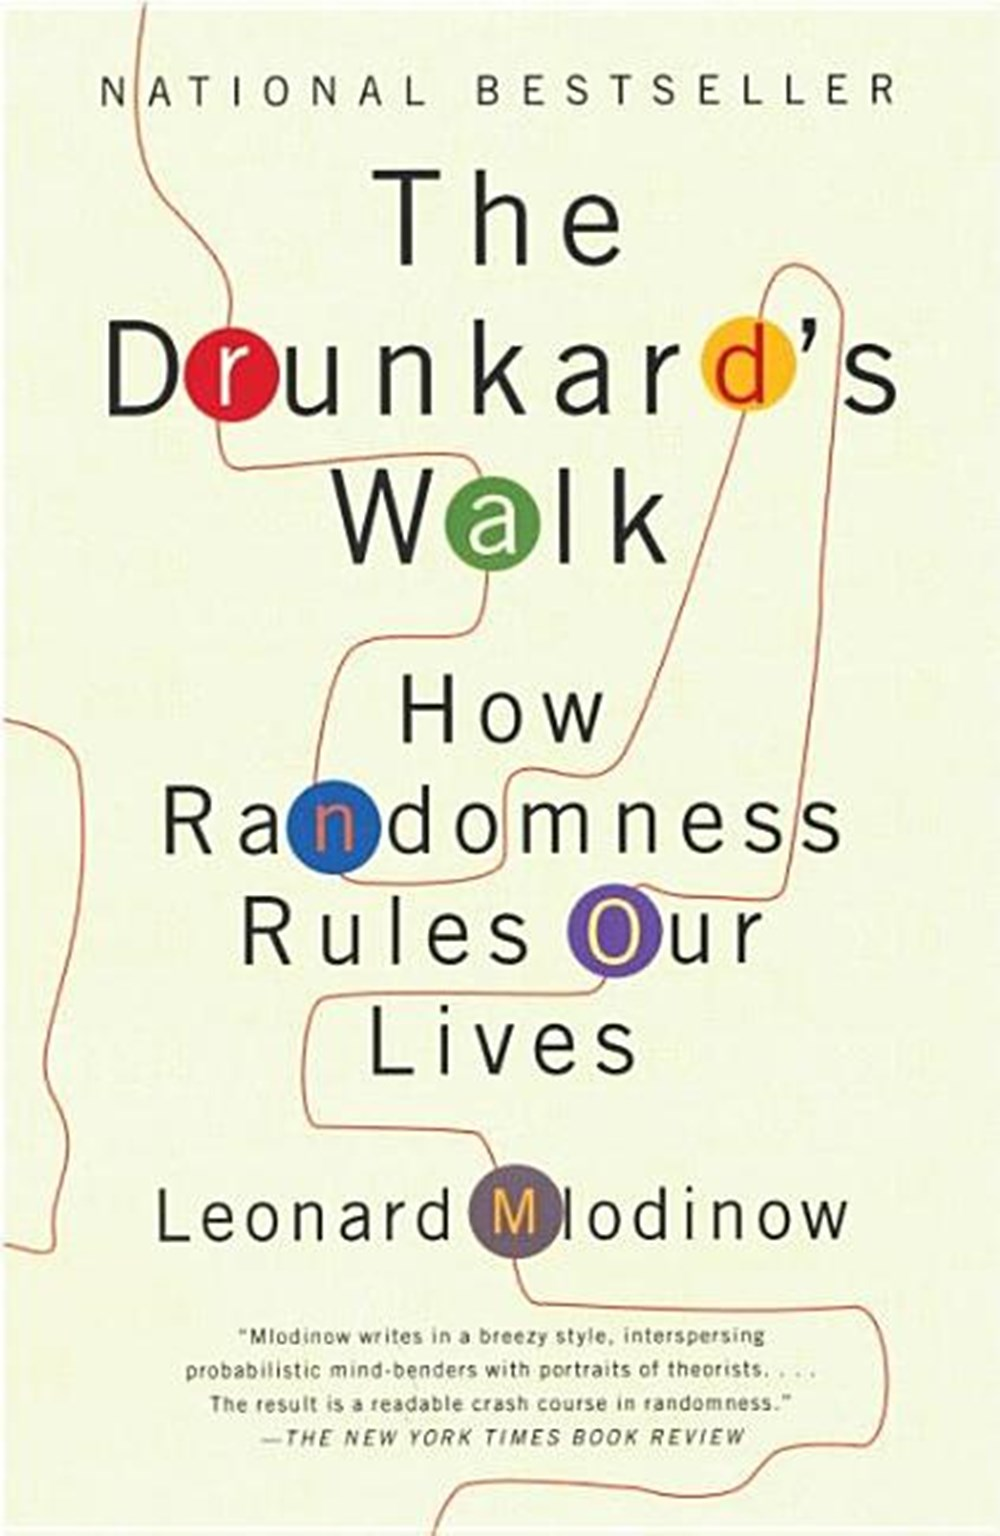 Drunkard's Walk How Randomness Rules Our Lives